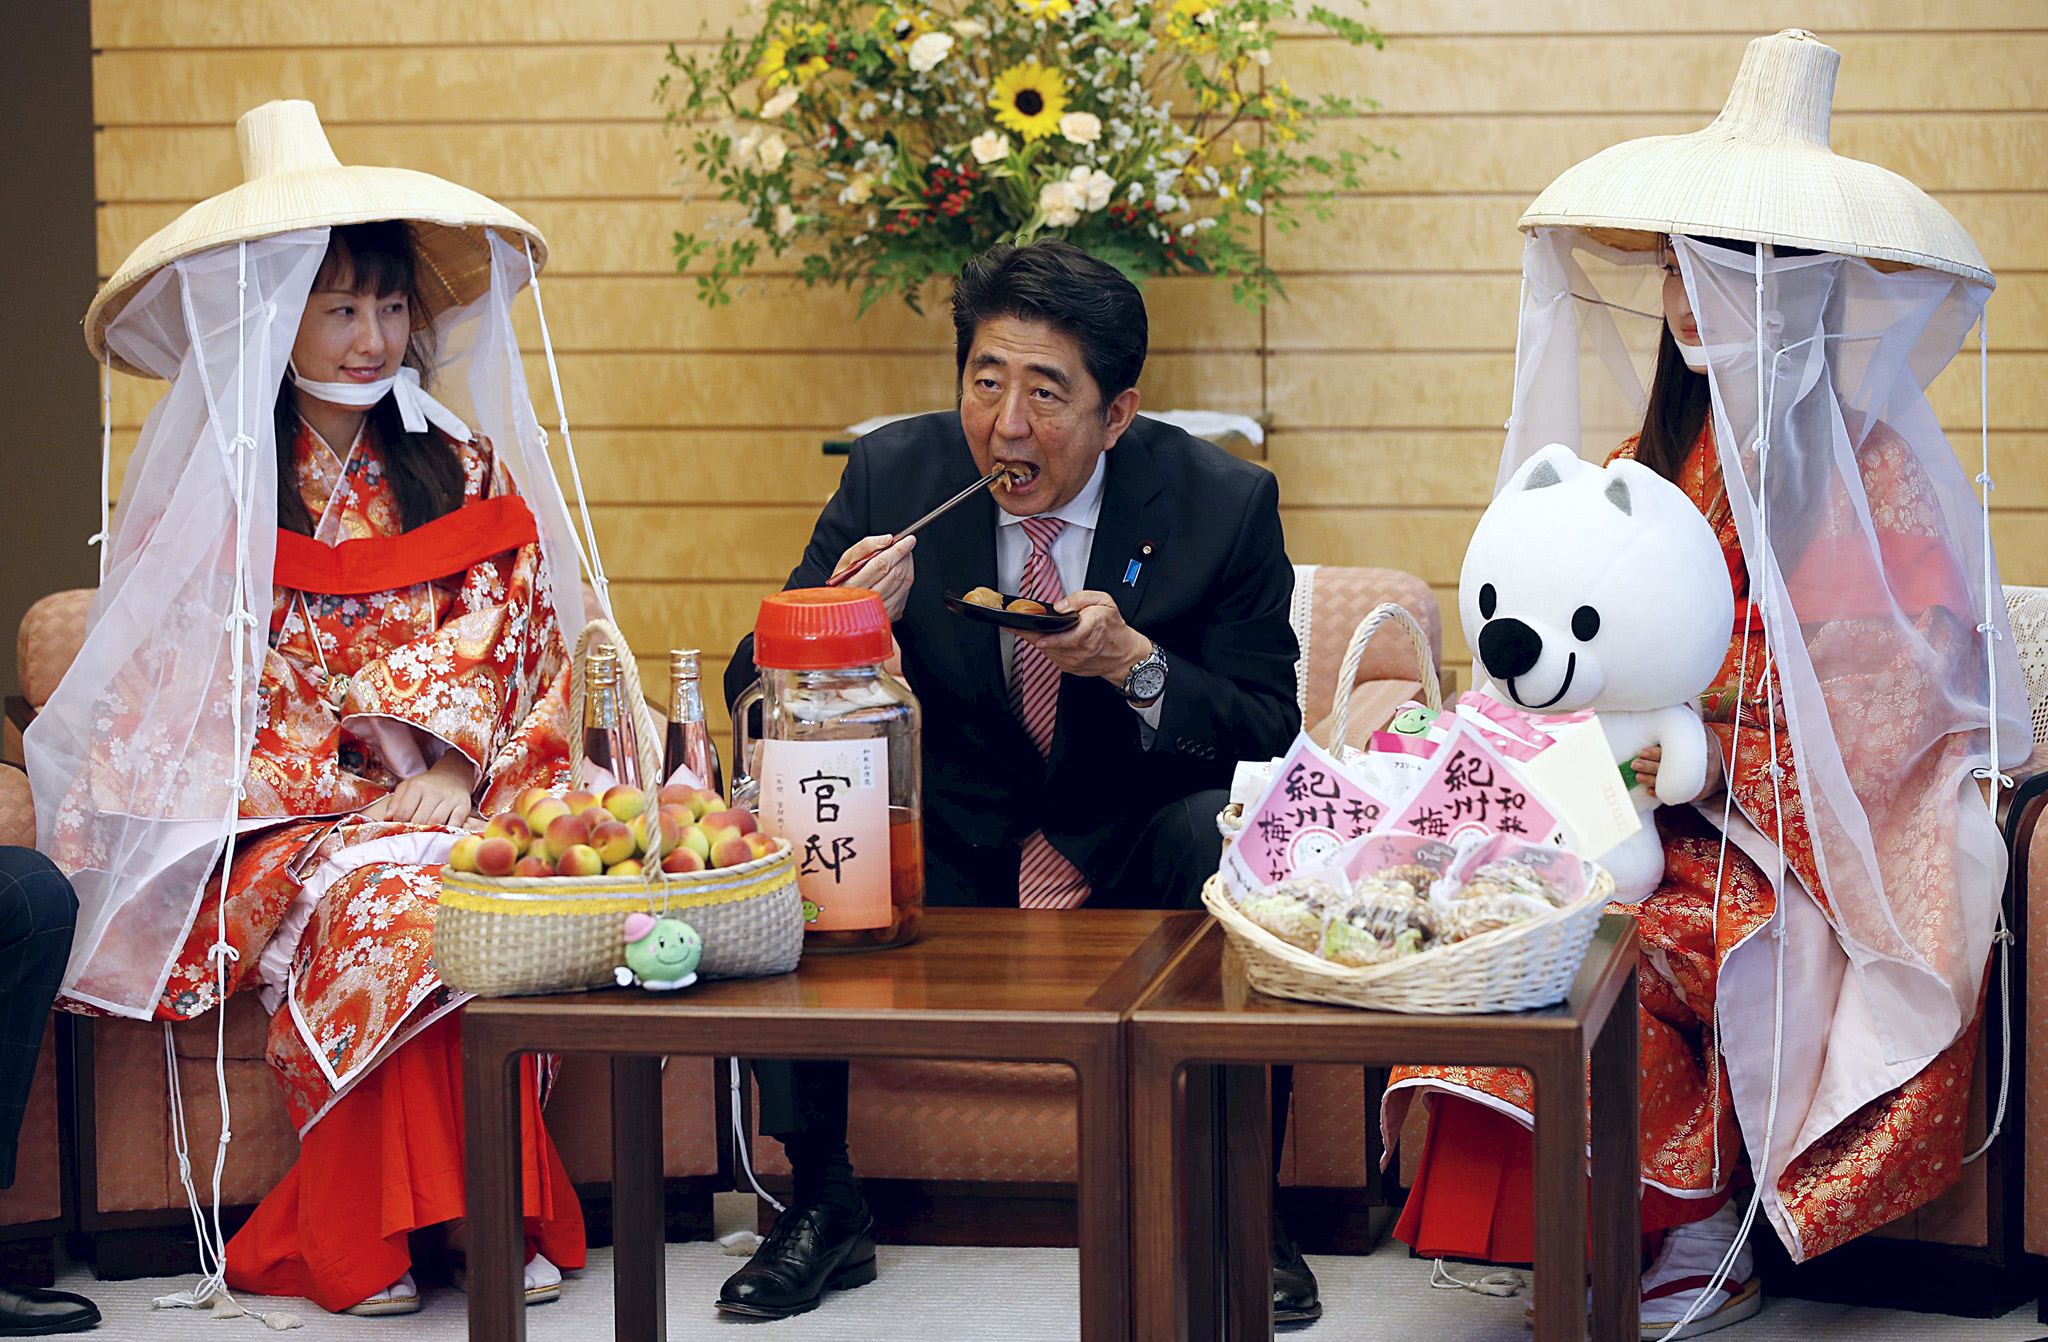 Japan's PM Abe eats a pickled plum as he meets with Miss Plum Baba and Kimoto, who are representing the Kishu Plum Organization, at Abe's official residence in Tokyo...Japan's Prime Minister Shinzo Abe (C) eats a pickled plum as he meets with Miss Plum Fuyuka Baba (R) and Miss Plum Kozue Kimoto, who are representing the Kishu Plum Organization, at Abe's official residence in Tokyo June 5, 2015.    REUTERS/Toru Hanai